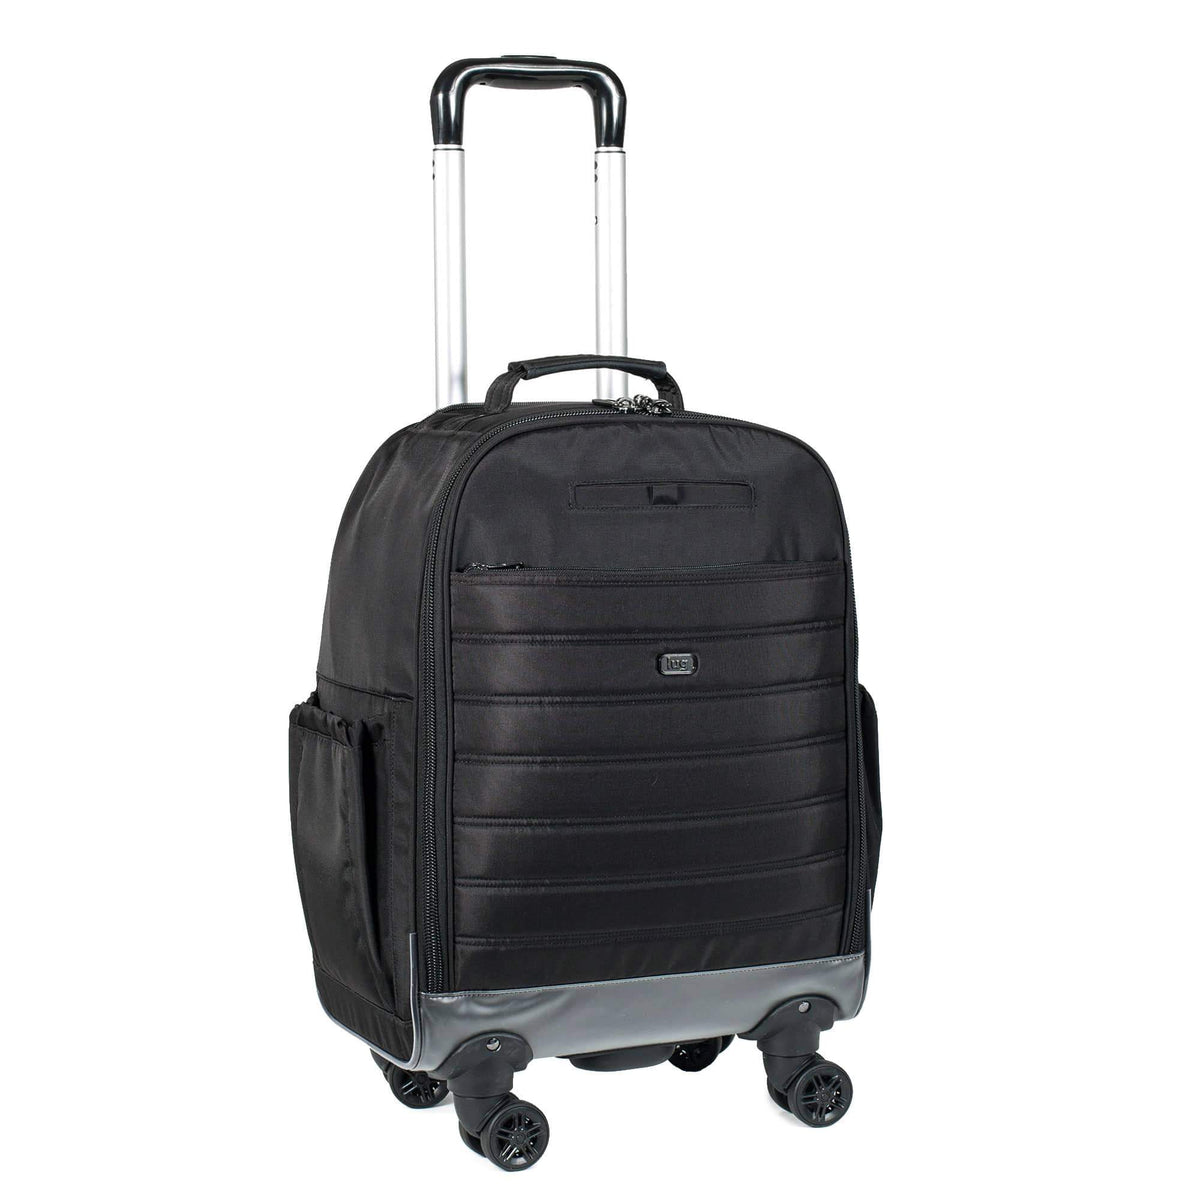 Porter Wheelie Luggage